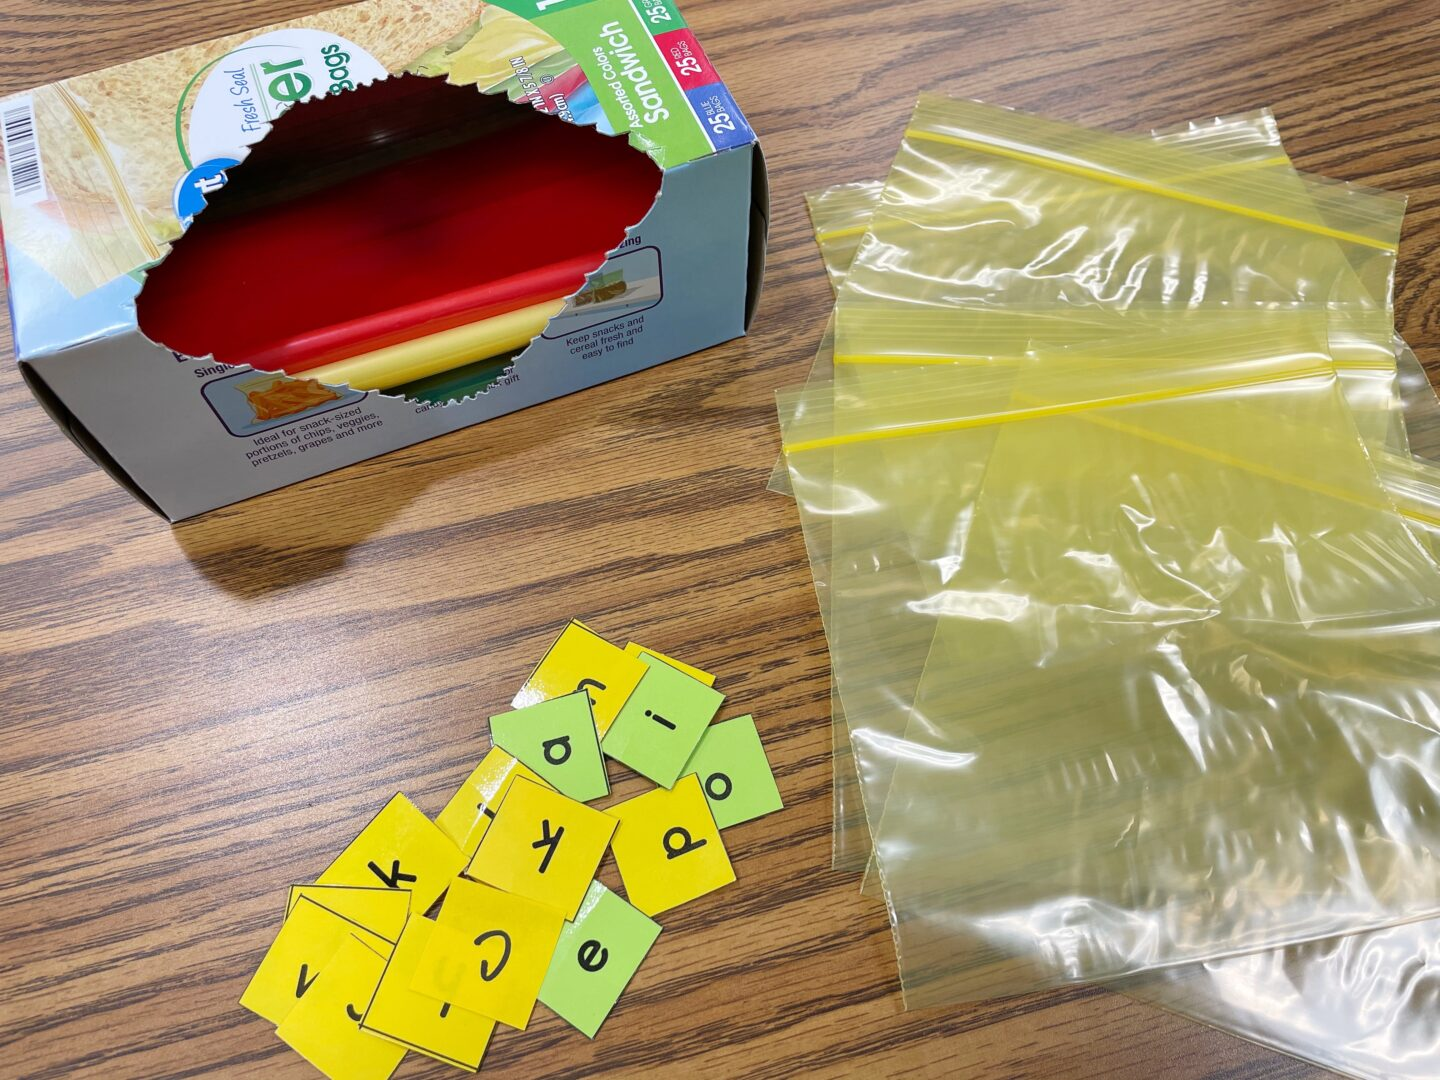 Image of Colored Sandwich Bags in a box with 5 Yellow Bags Laid on Desk with Letter Tiles used for Teaching Spelling